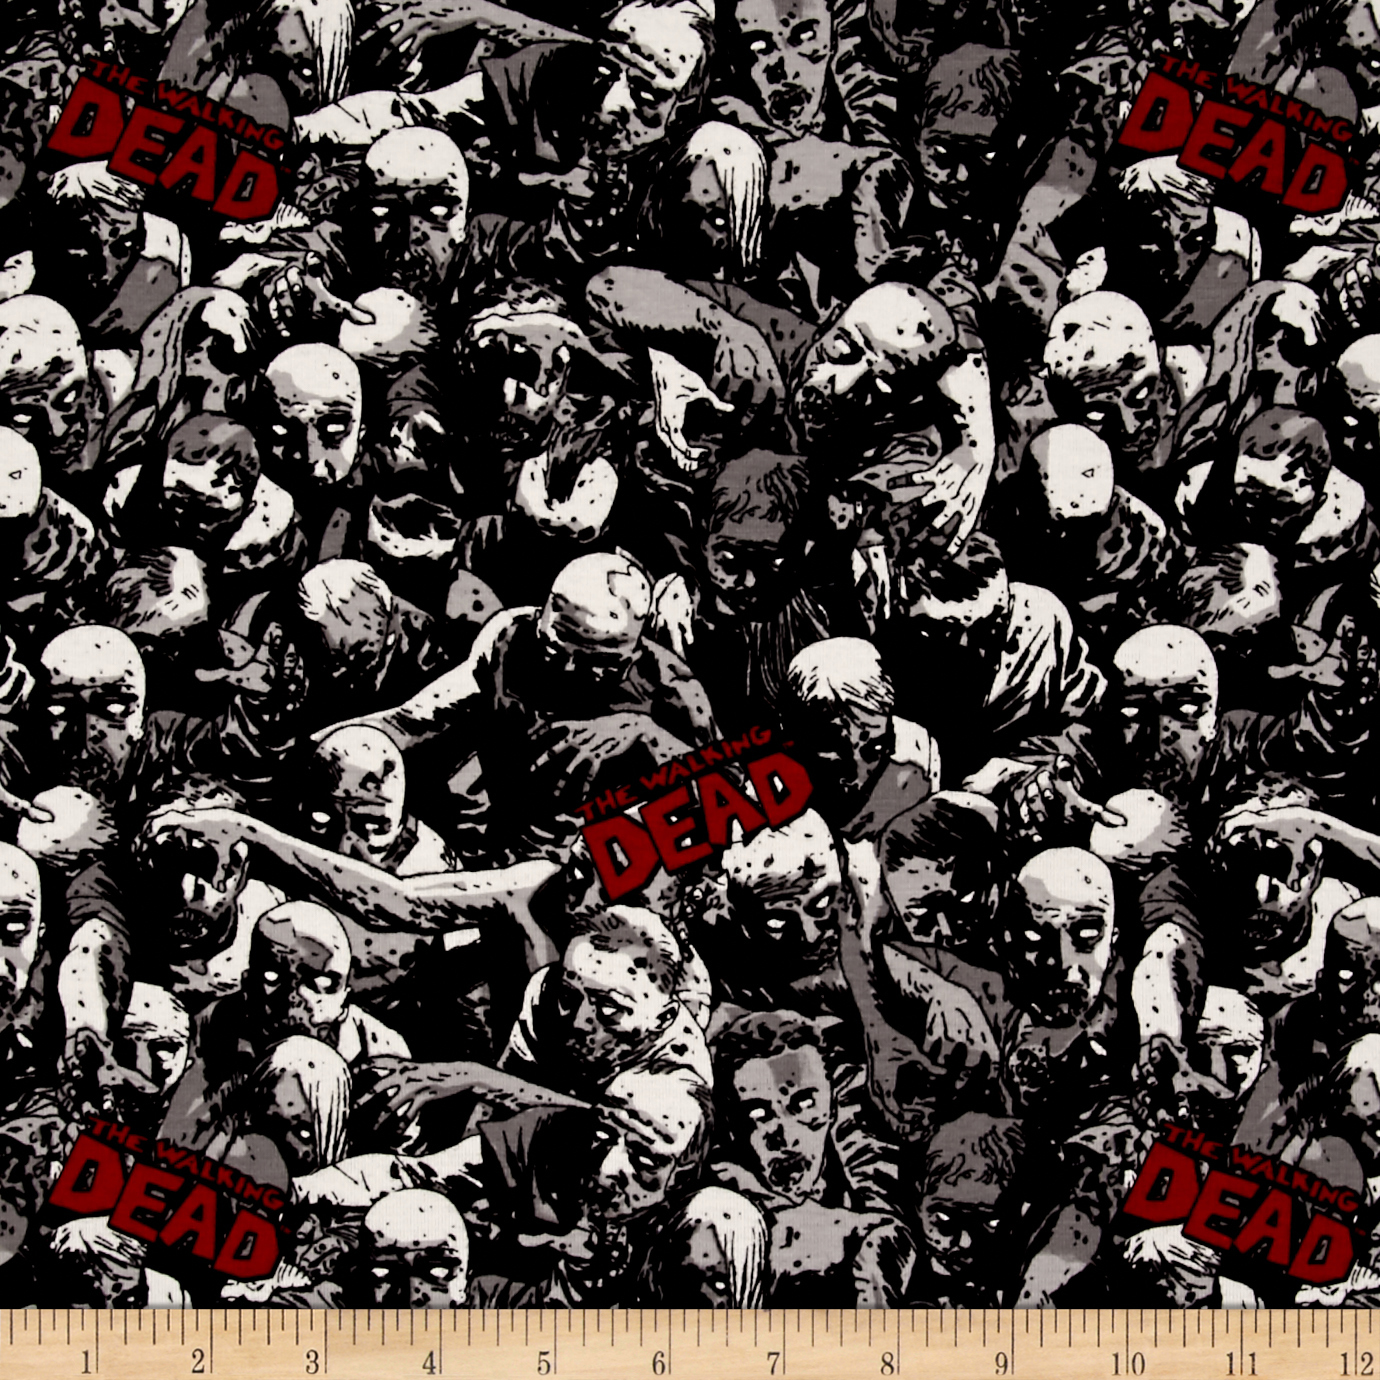 Skybound Walking Dead Zombie Crowd Jersey Knit Black Fabric by E. E. Schenck in USA